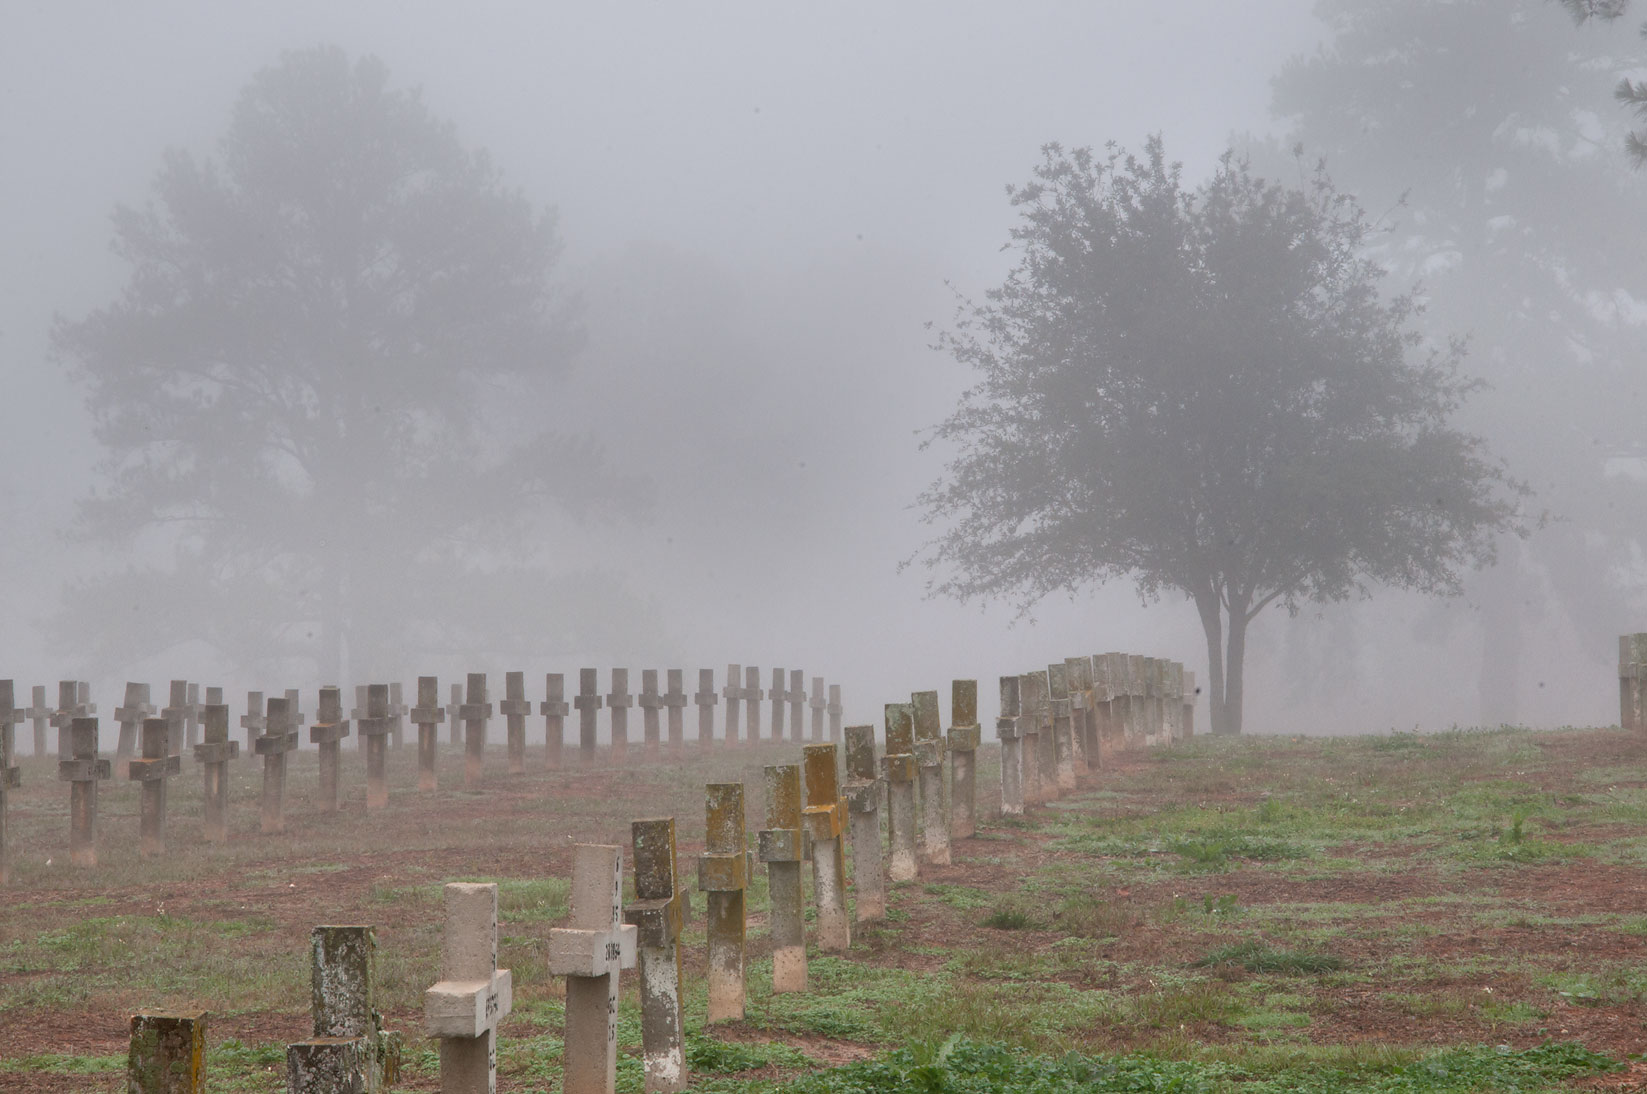 Rows of tombs in TDCJ Captain Joe Byrd...Cemetery in fog. Huntsville, Texas